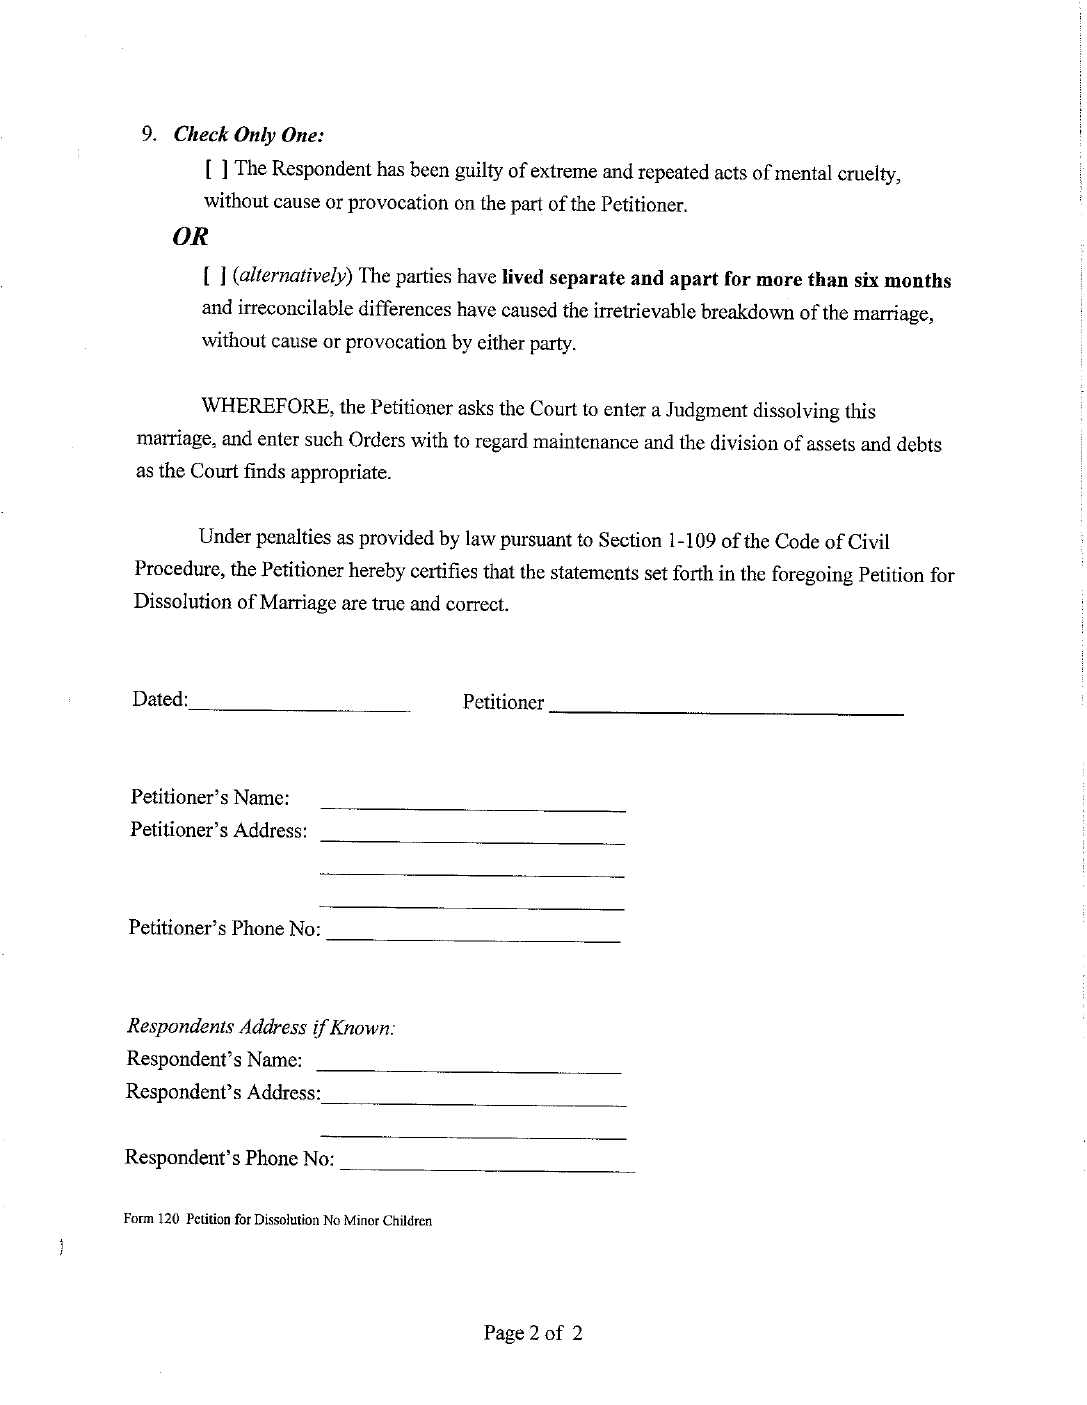 Dissolution Of Marriage Form Without Minor Children